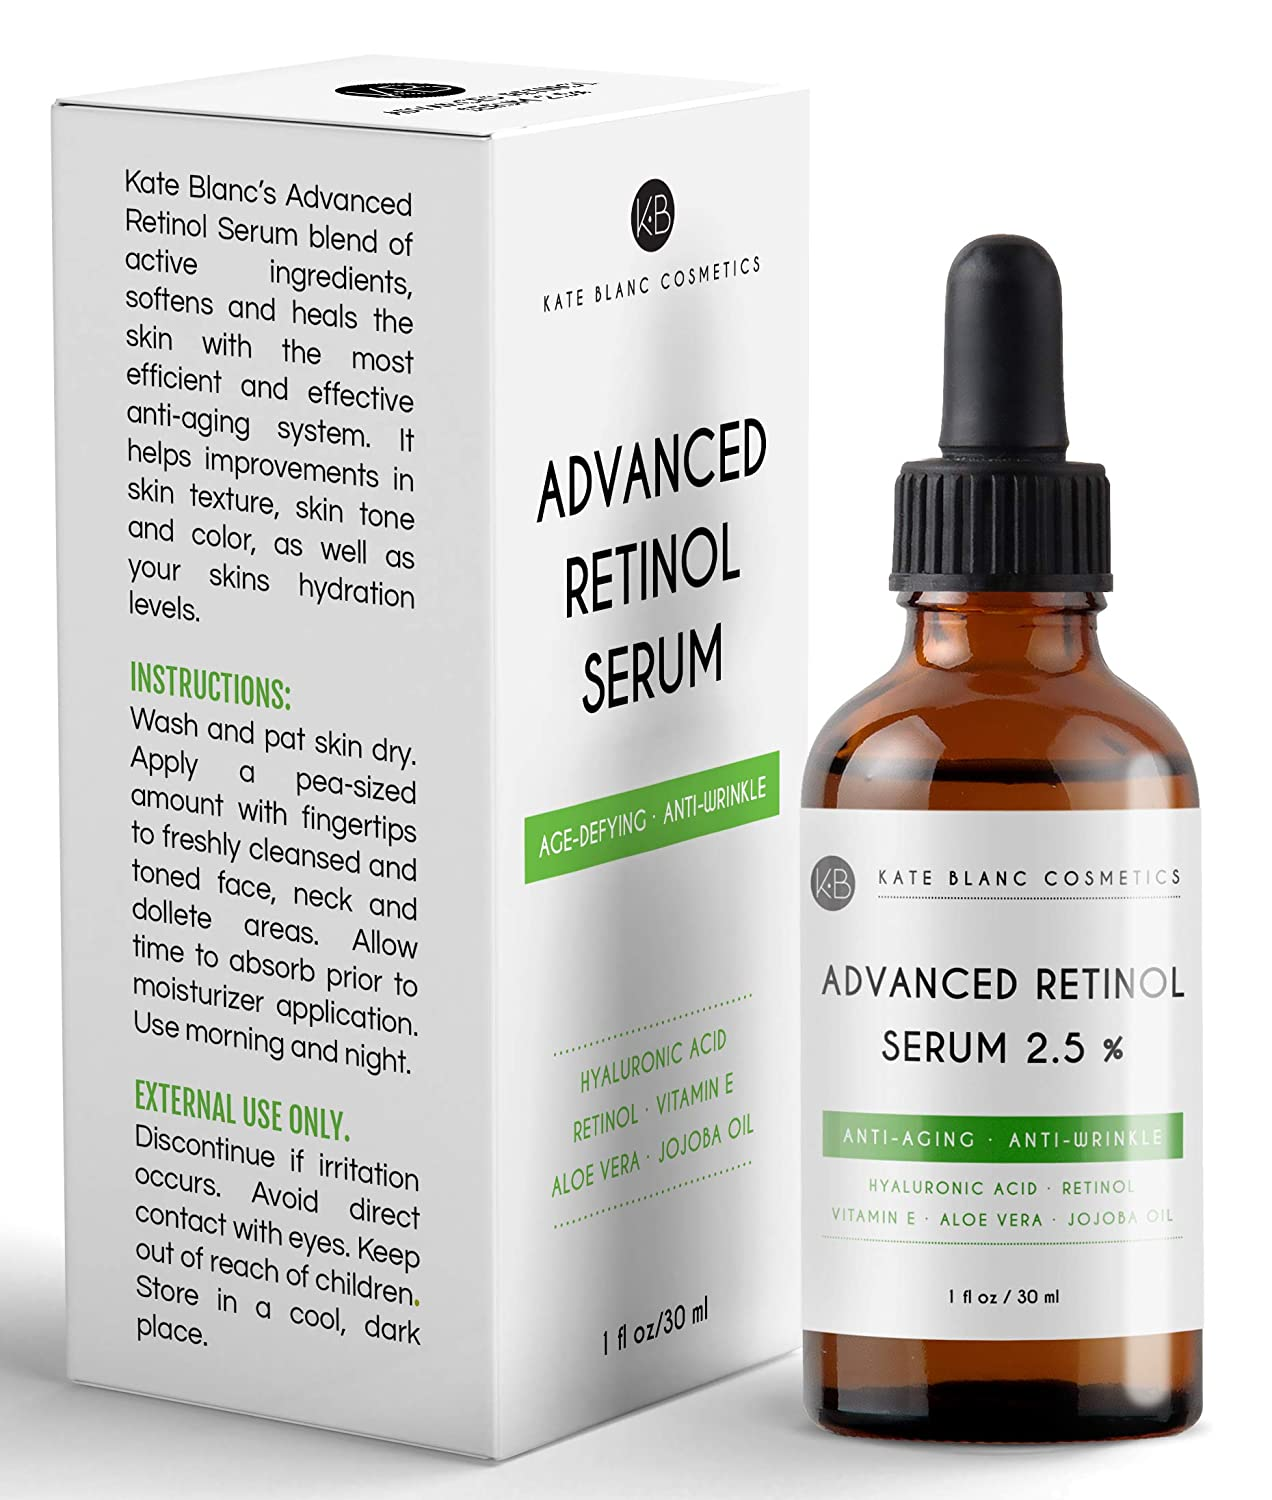 Retinol Serum 2.5% with Hyaluronic Acid & Vitamin E, C for Face, Acne Scars, Dark Spots by Kate Blanc. High Strength Anti-Aging Topical Facial Serum Without a Prescription. Organic Ingredients (4oz)